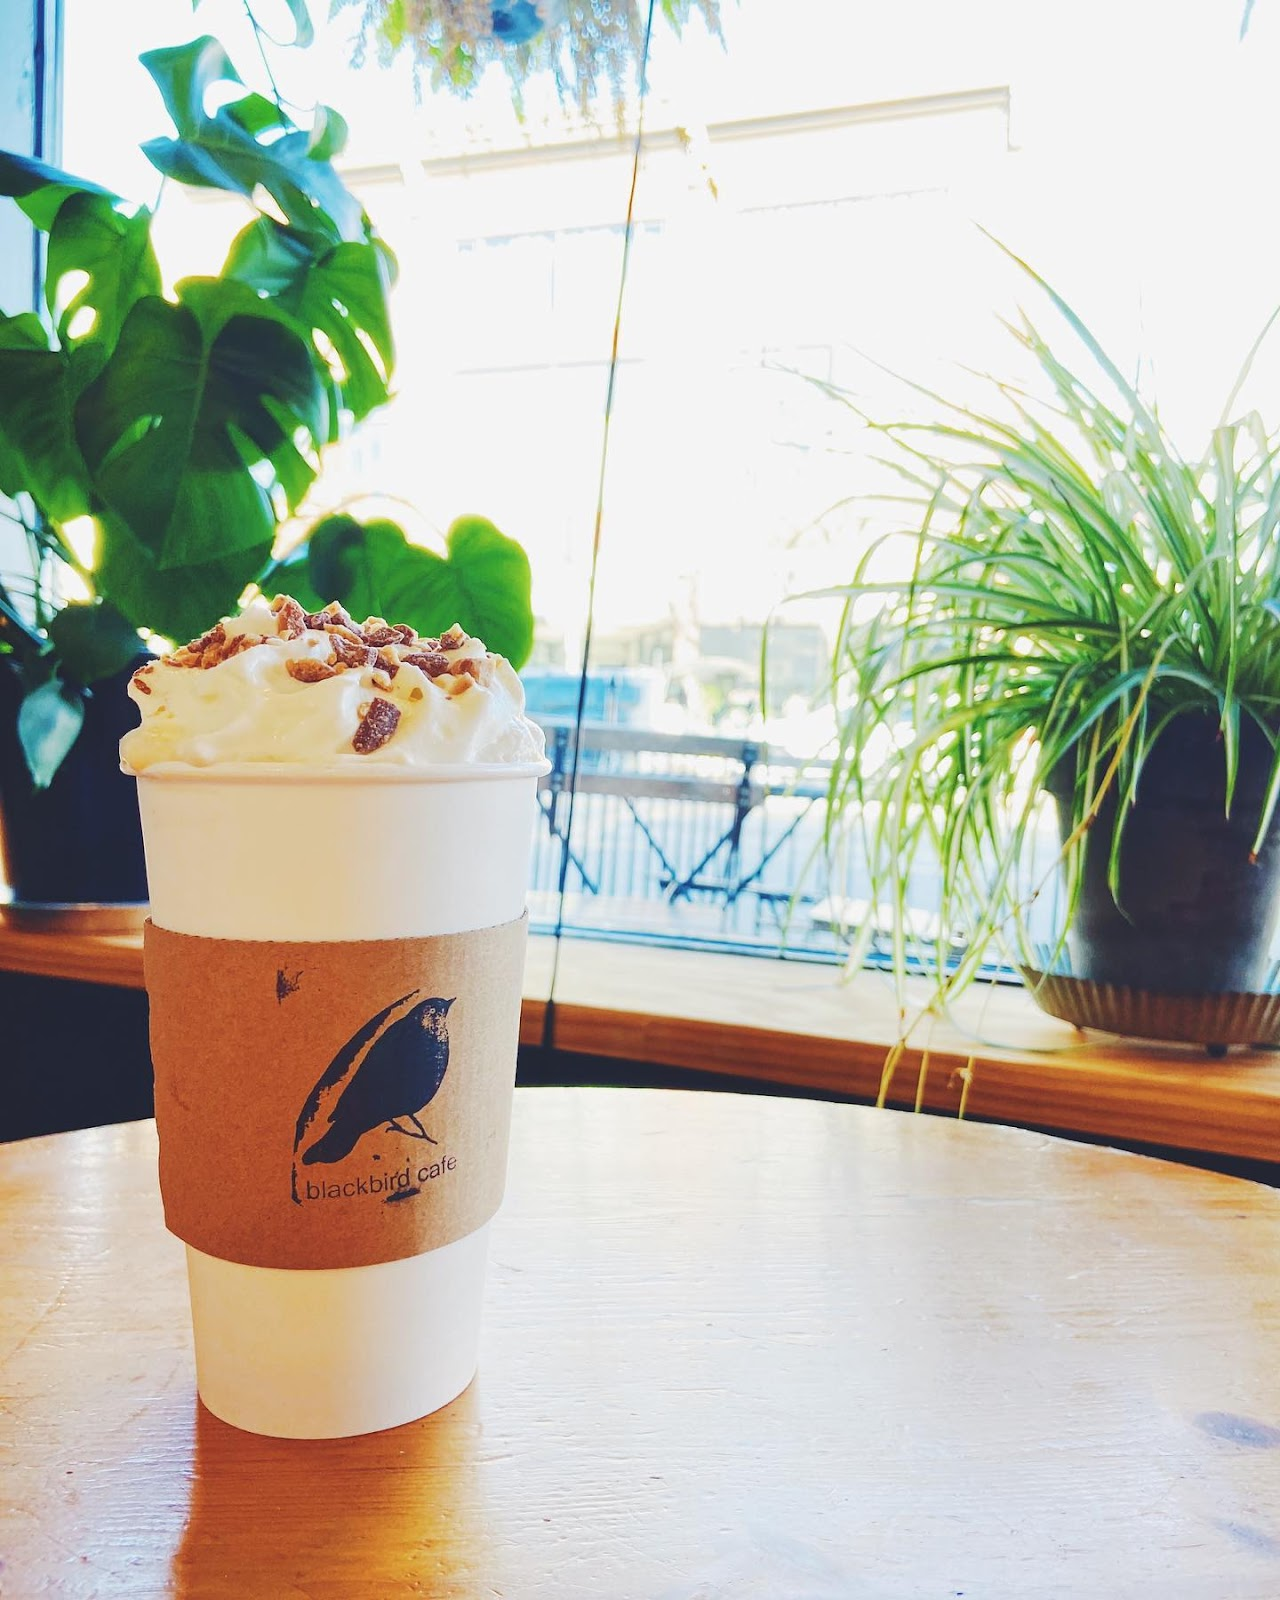 Blackbird Cafe latte